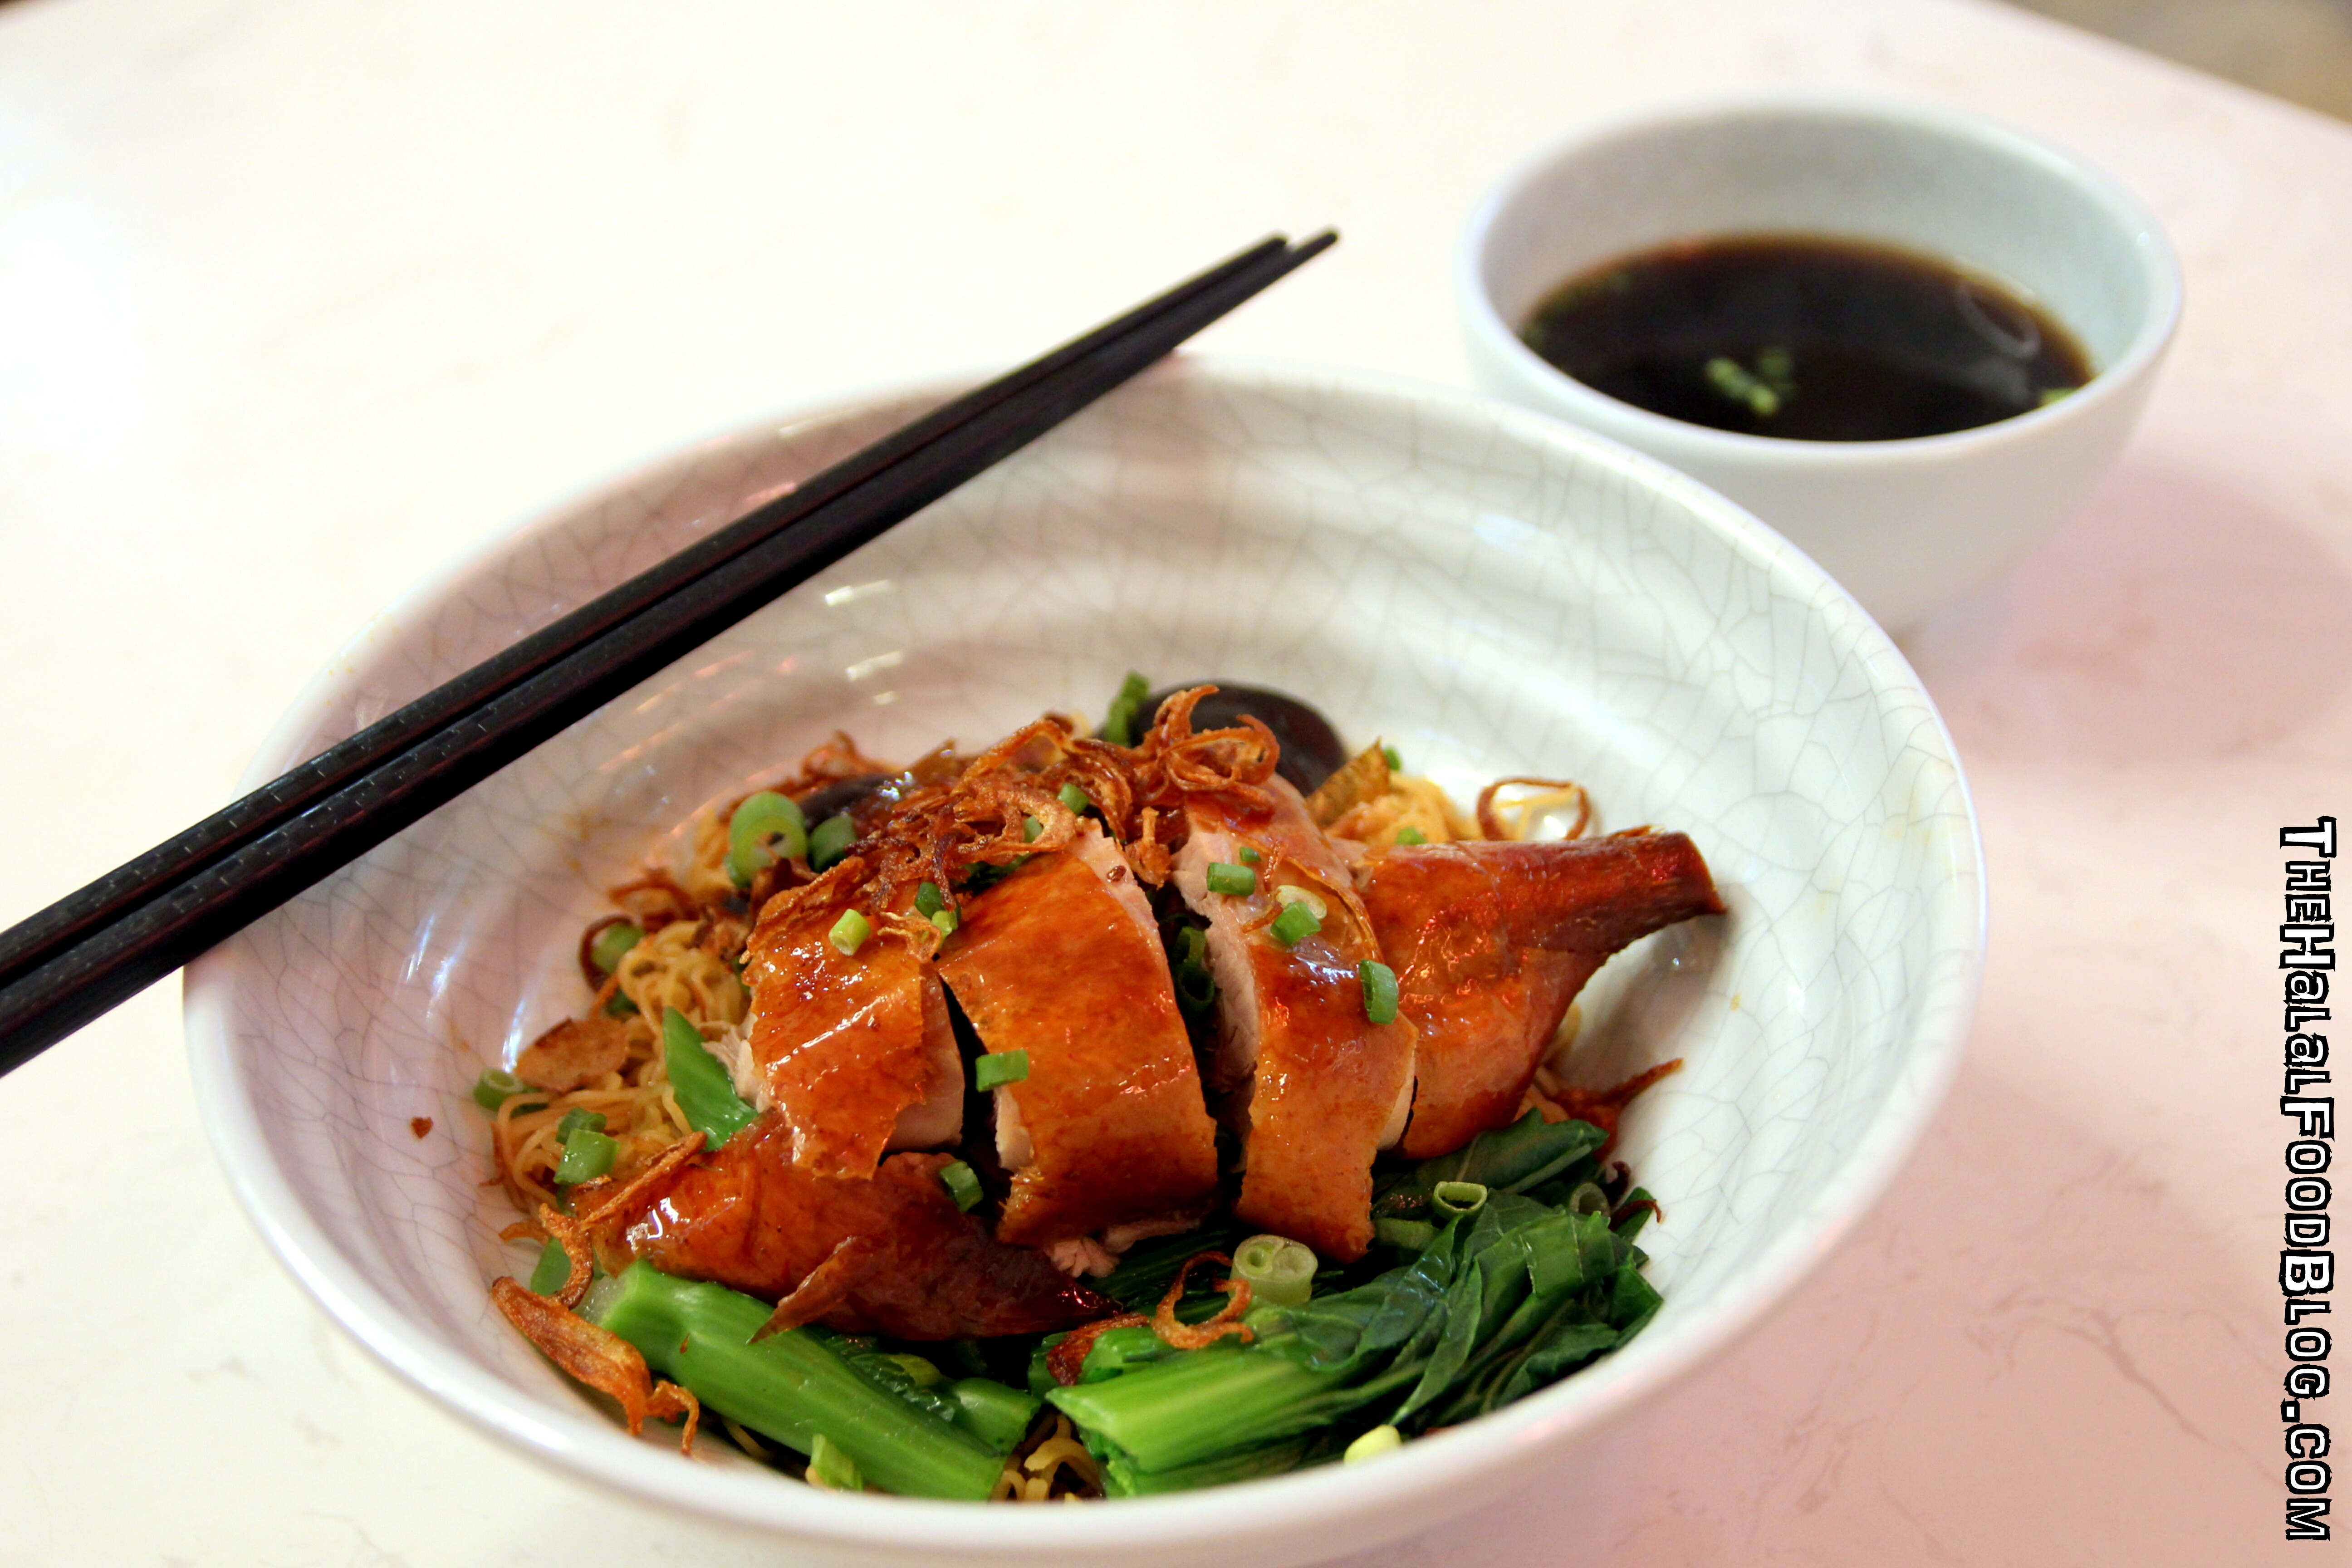 The Dim Sum Place - The Halal Food Blog